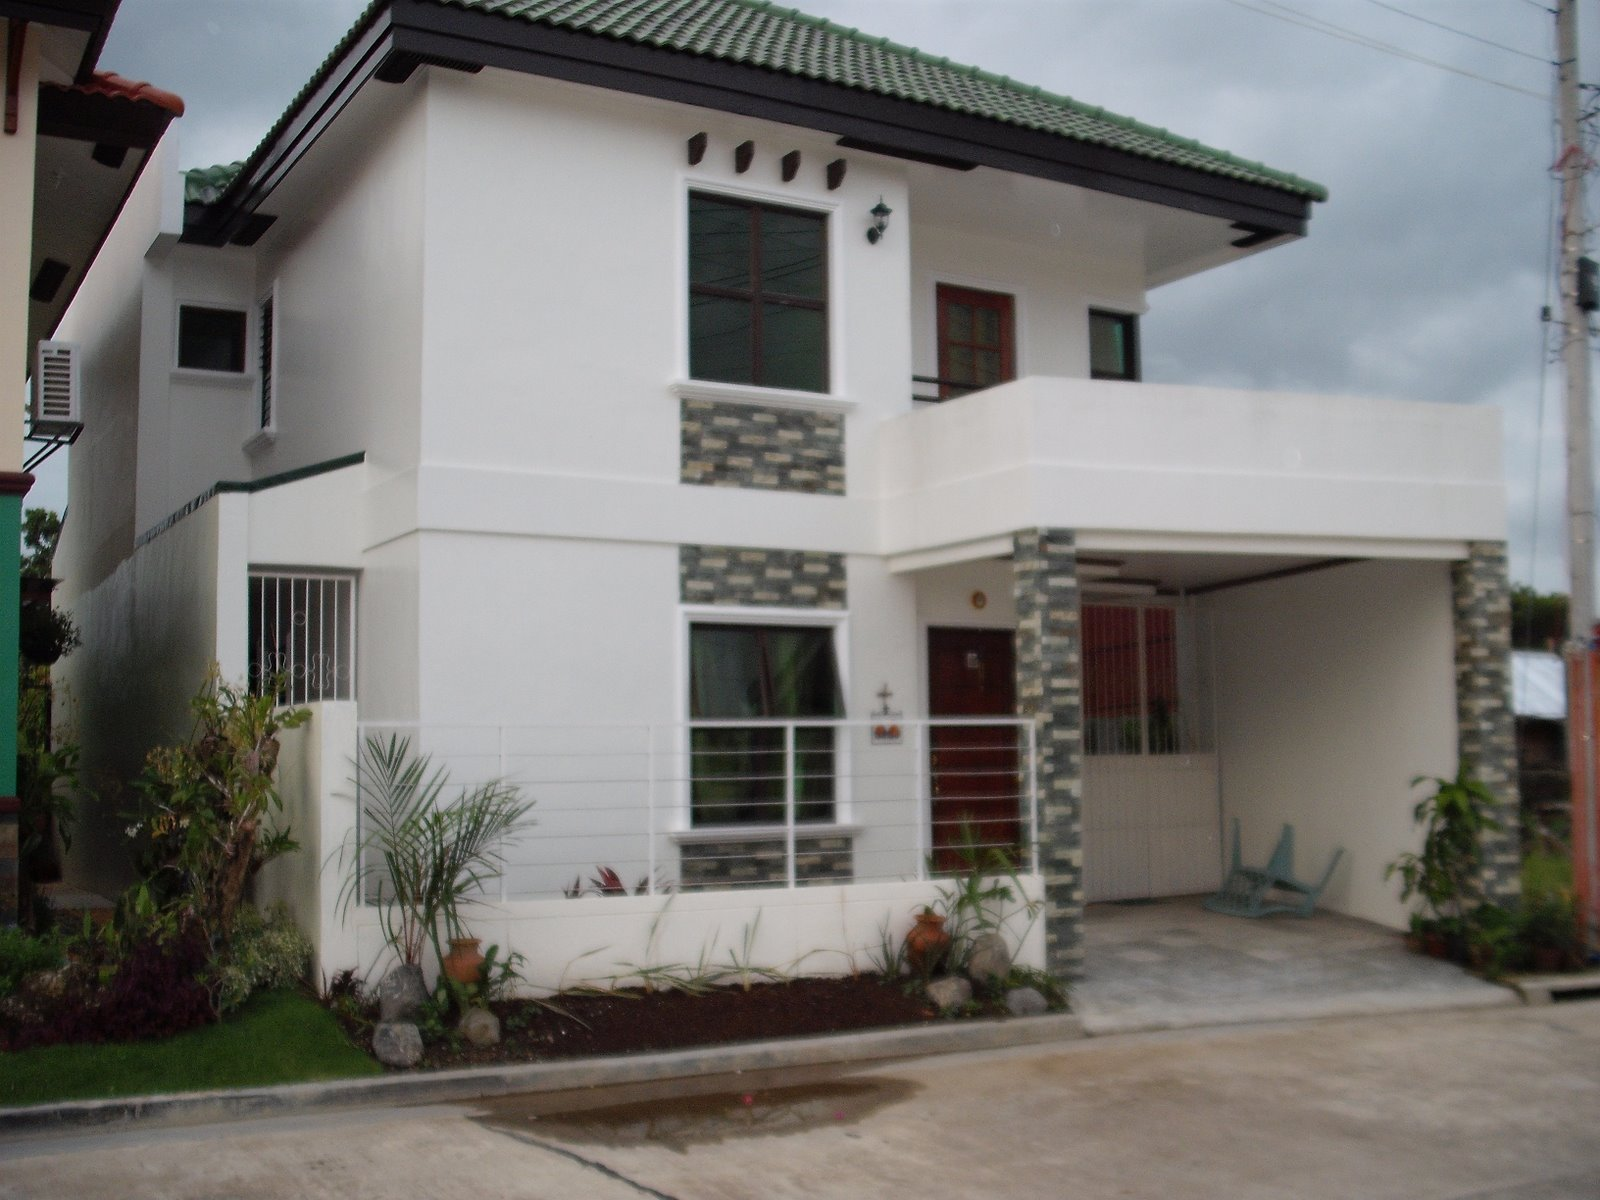 For information and photos of royal residence iloilo s amenities features and house models visit royal residence iloilo s amenities features and house